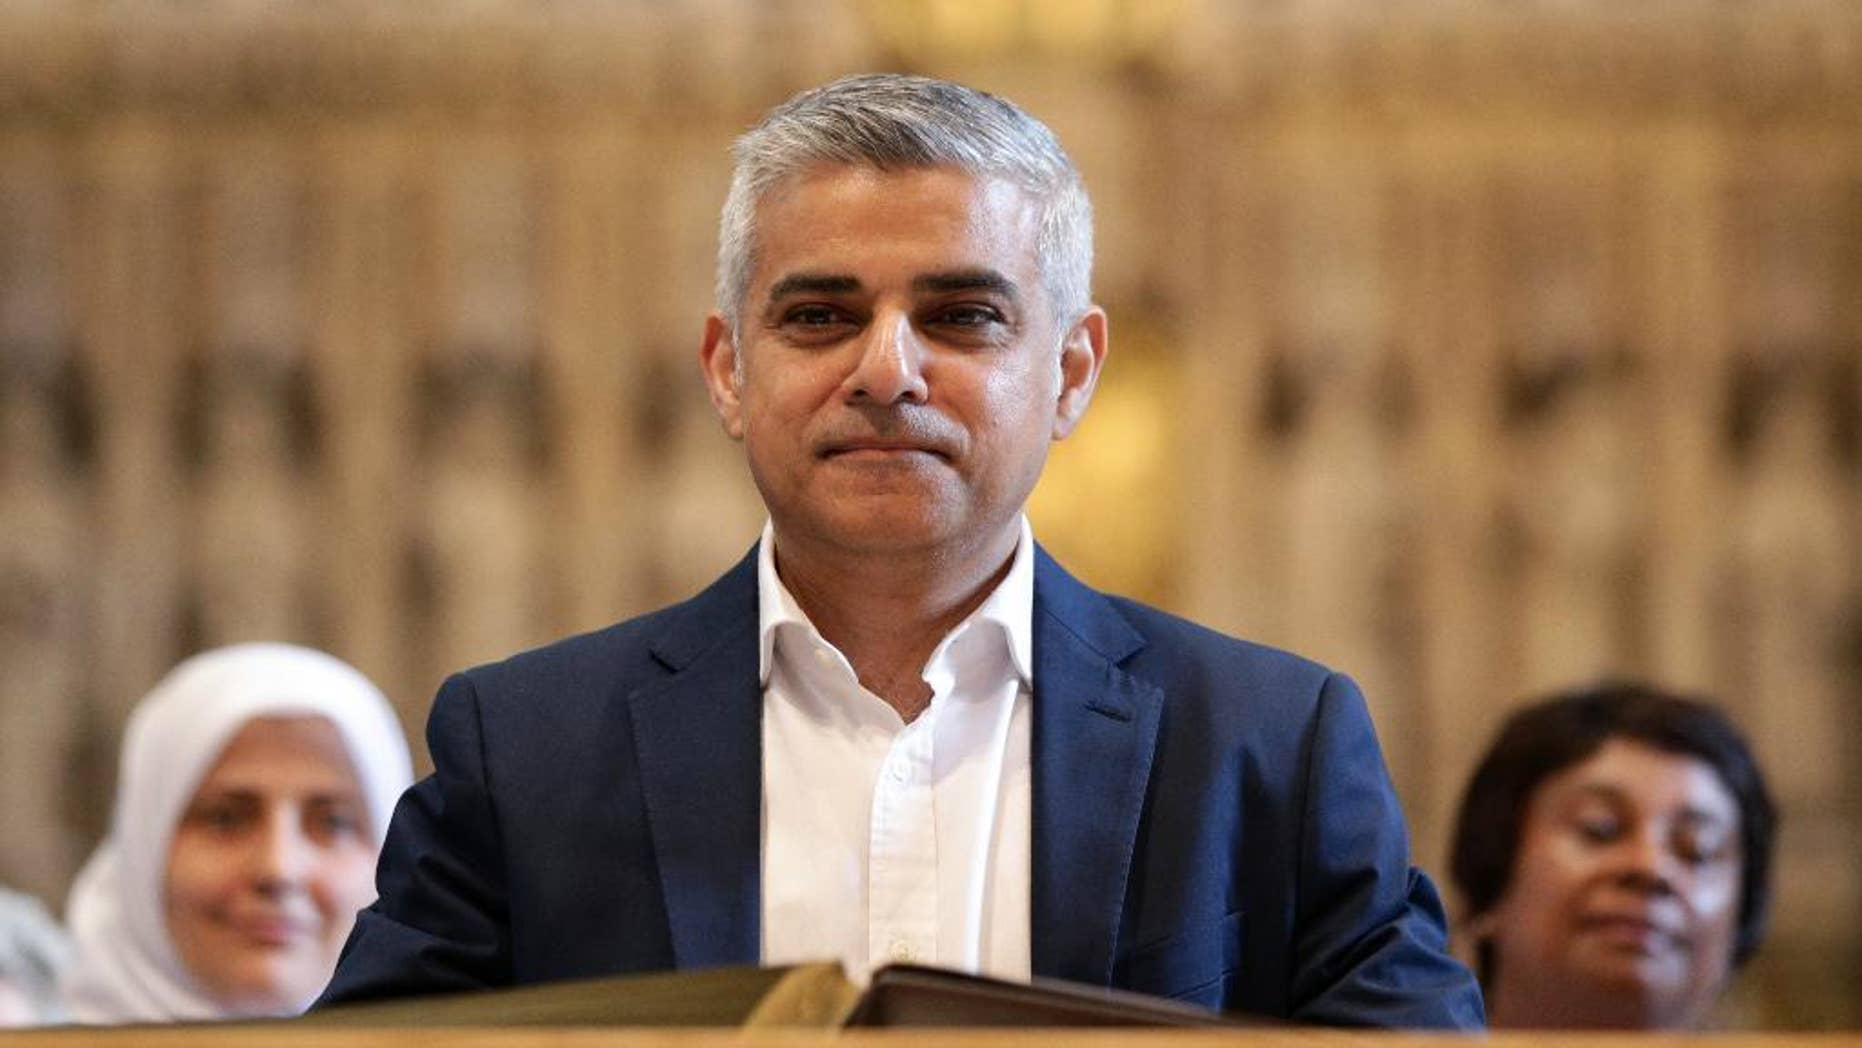 London's mayor Sadiq Khan has been under pressure to tackle the city's rising knife crime problems.